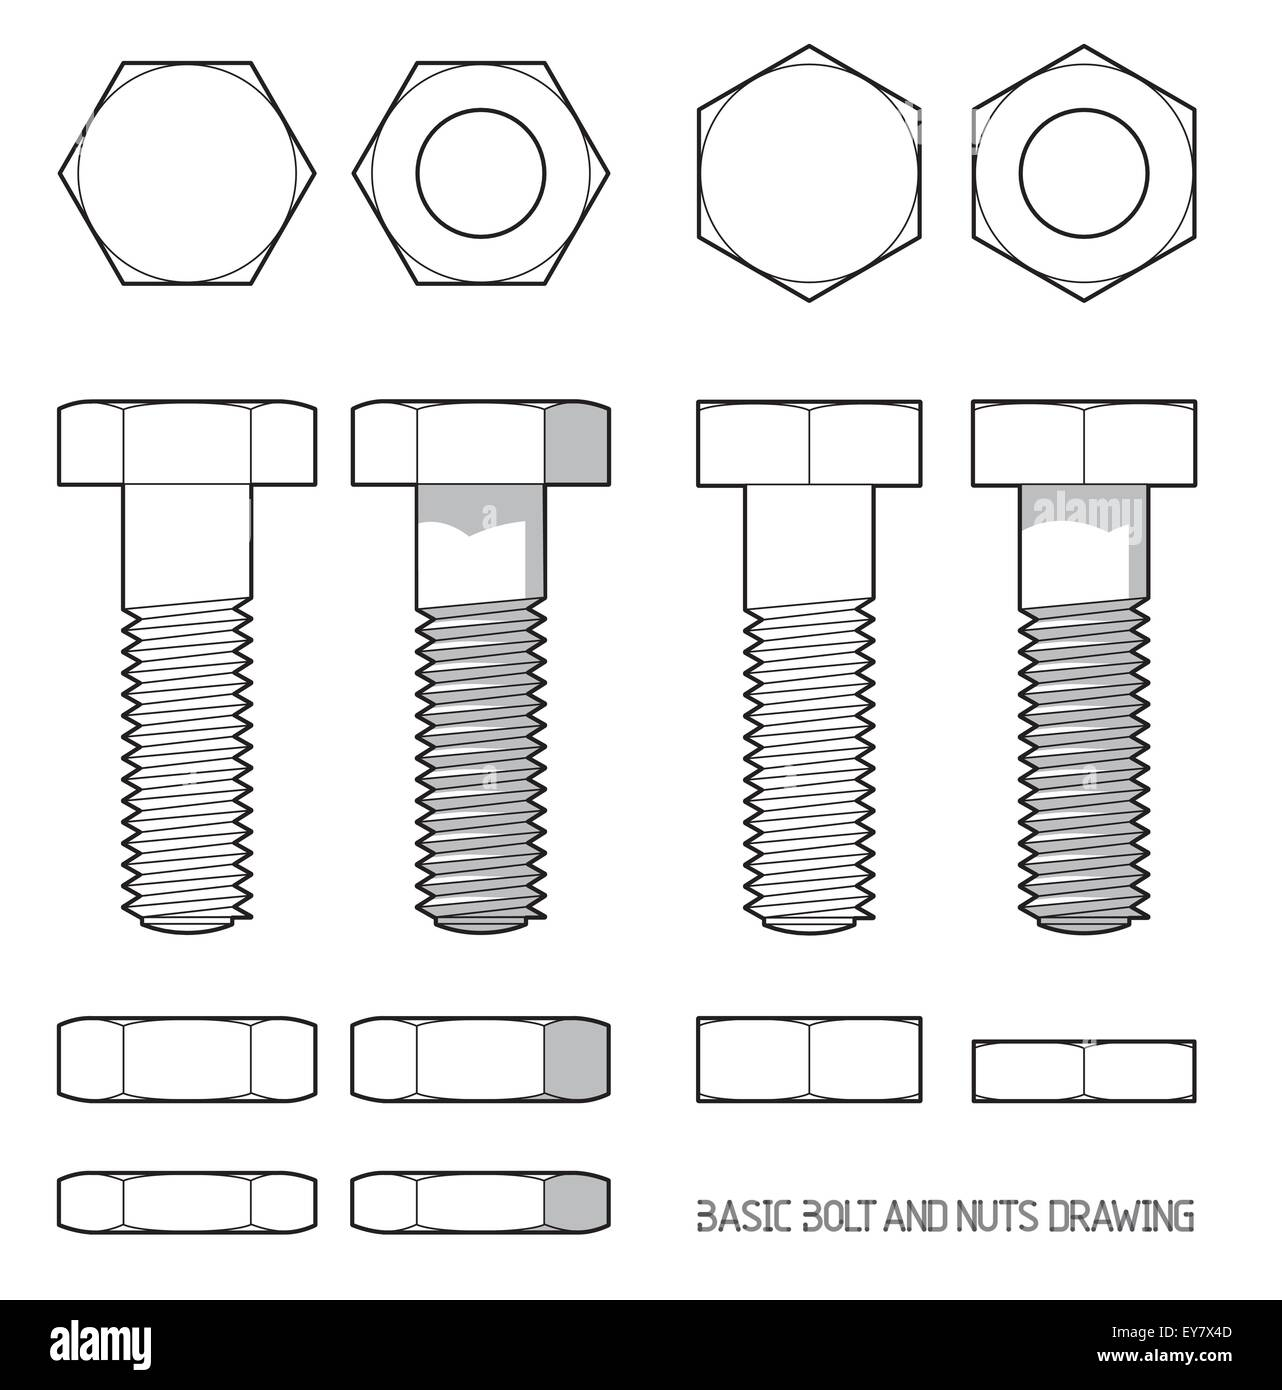 Hexagonal bolt and nuts in orthogonal projection - Stock Image